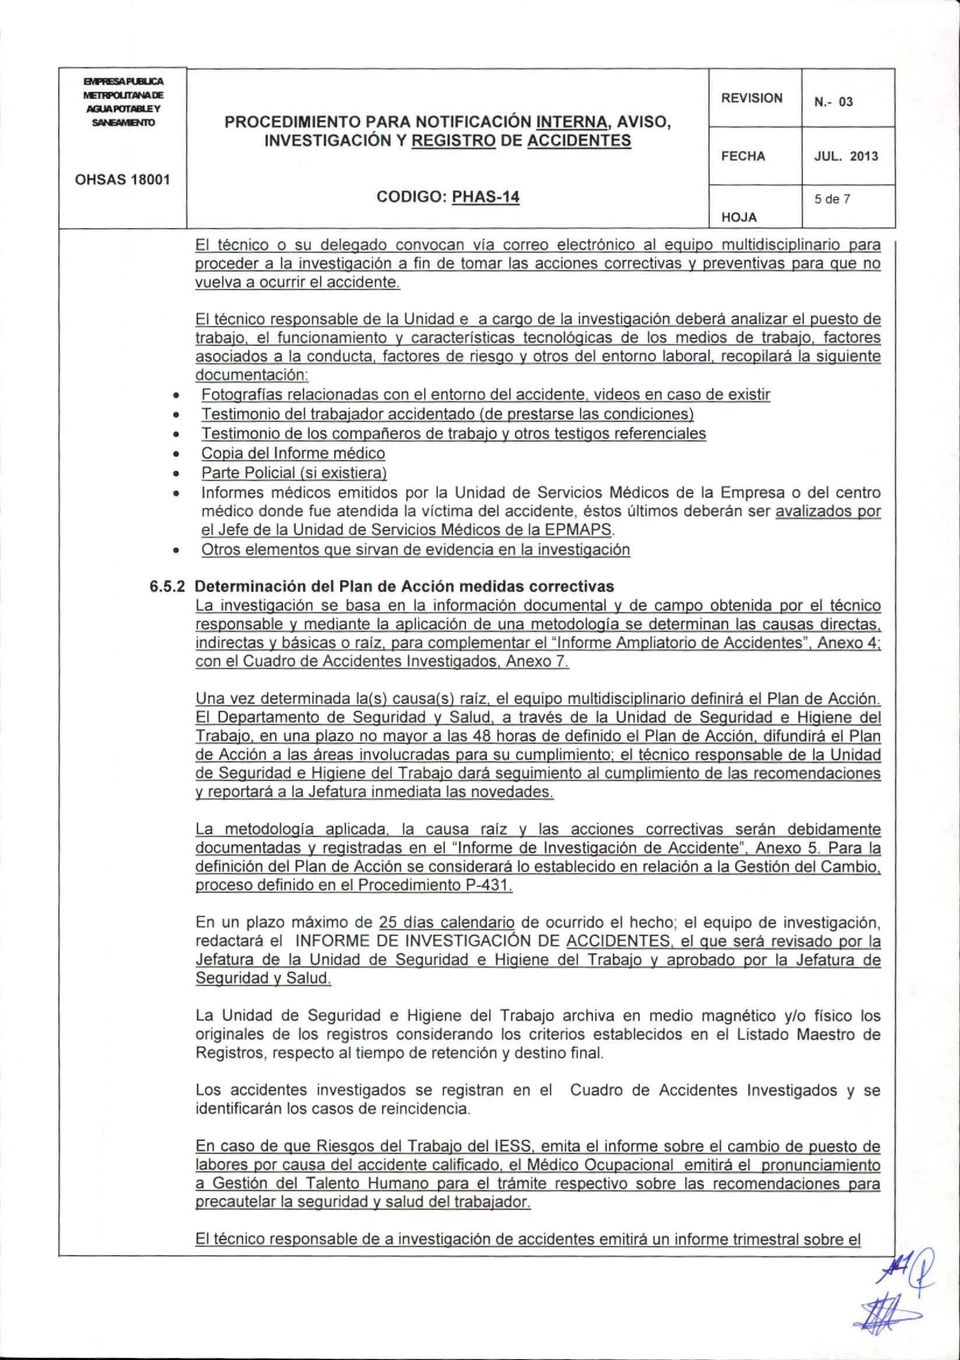 correctivas y preventivas para que no vuelva a ocurrir el accidente.